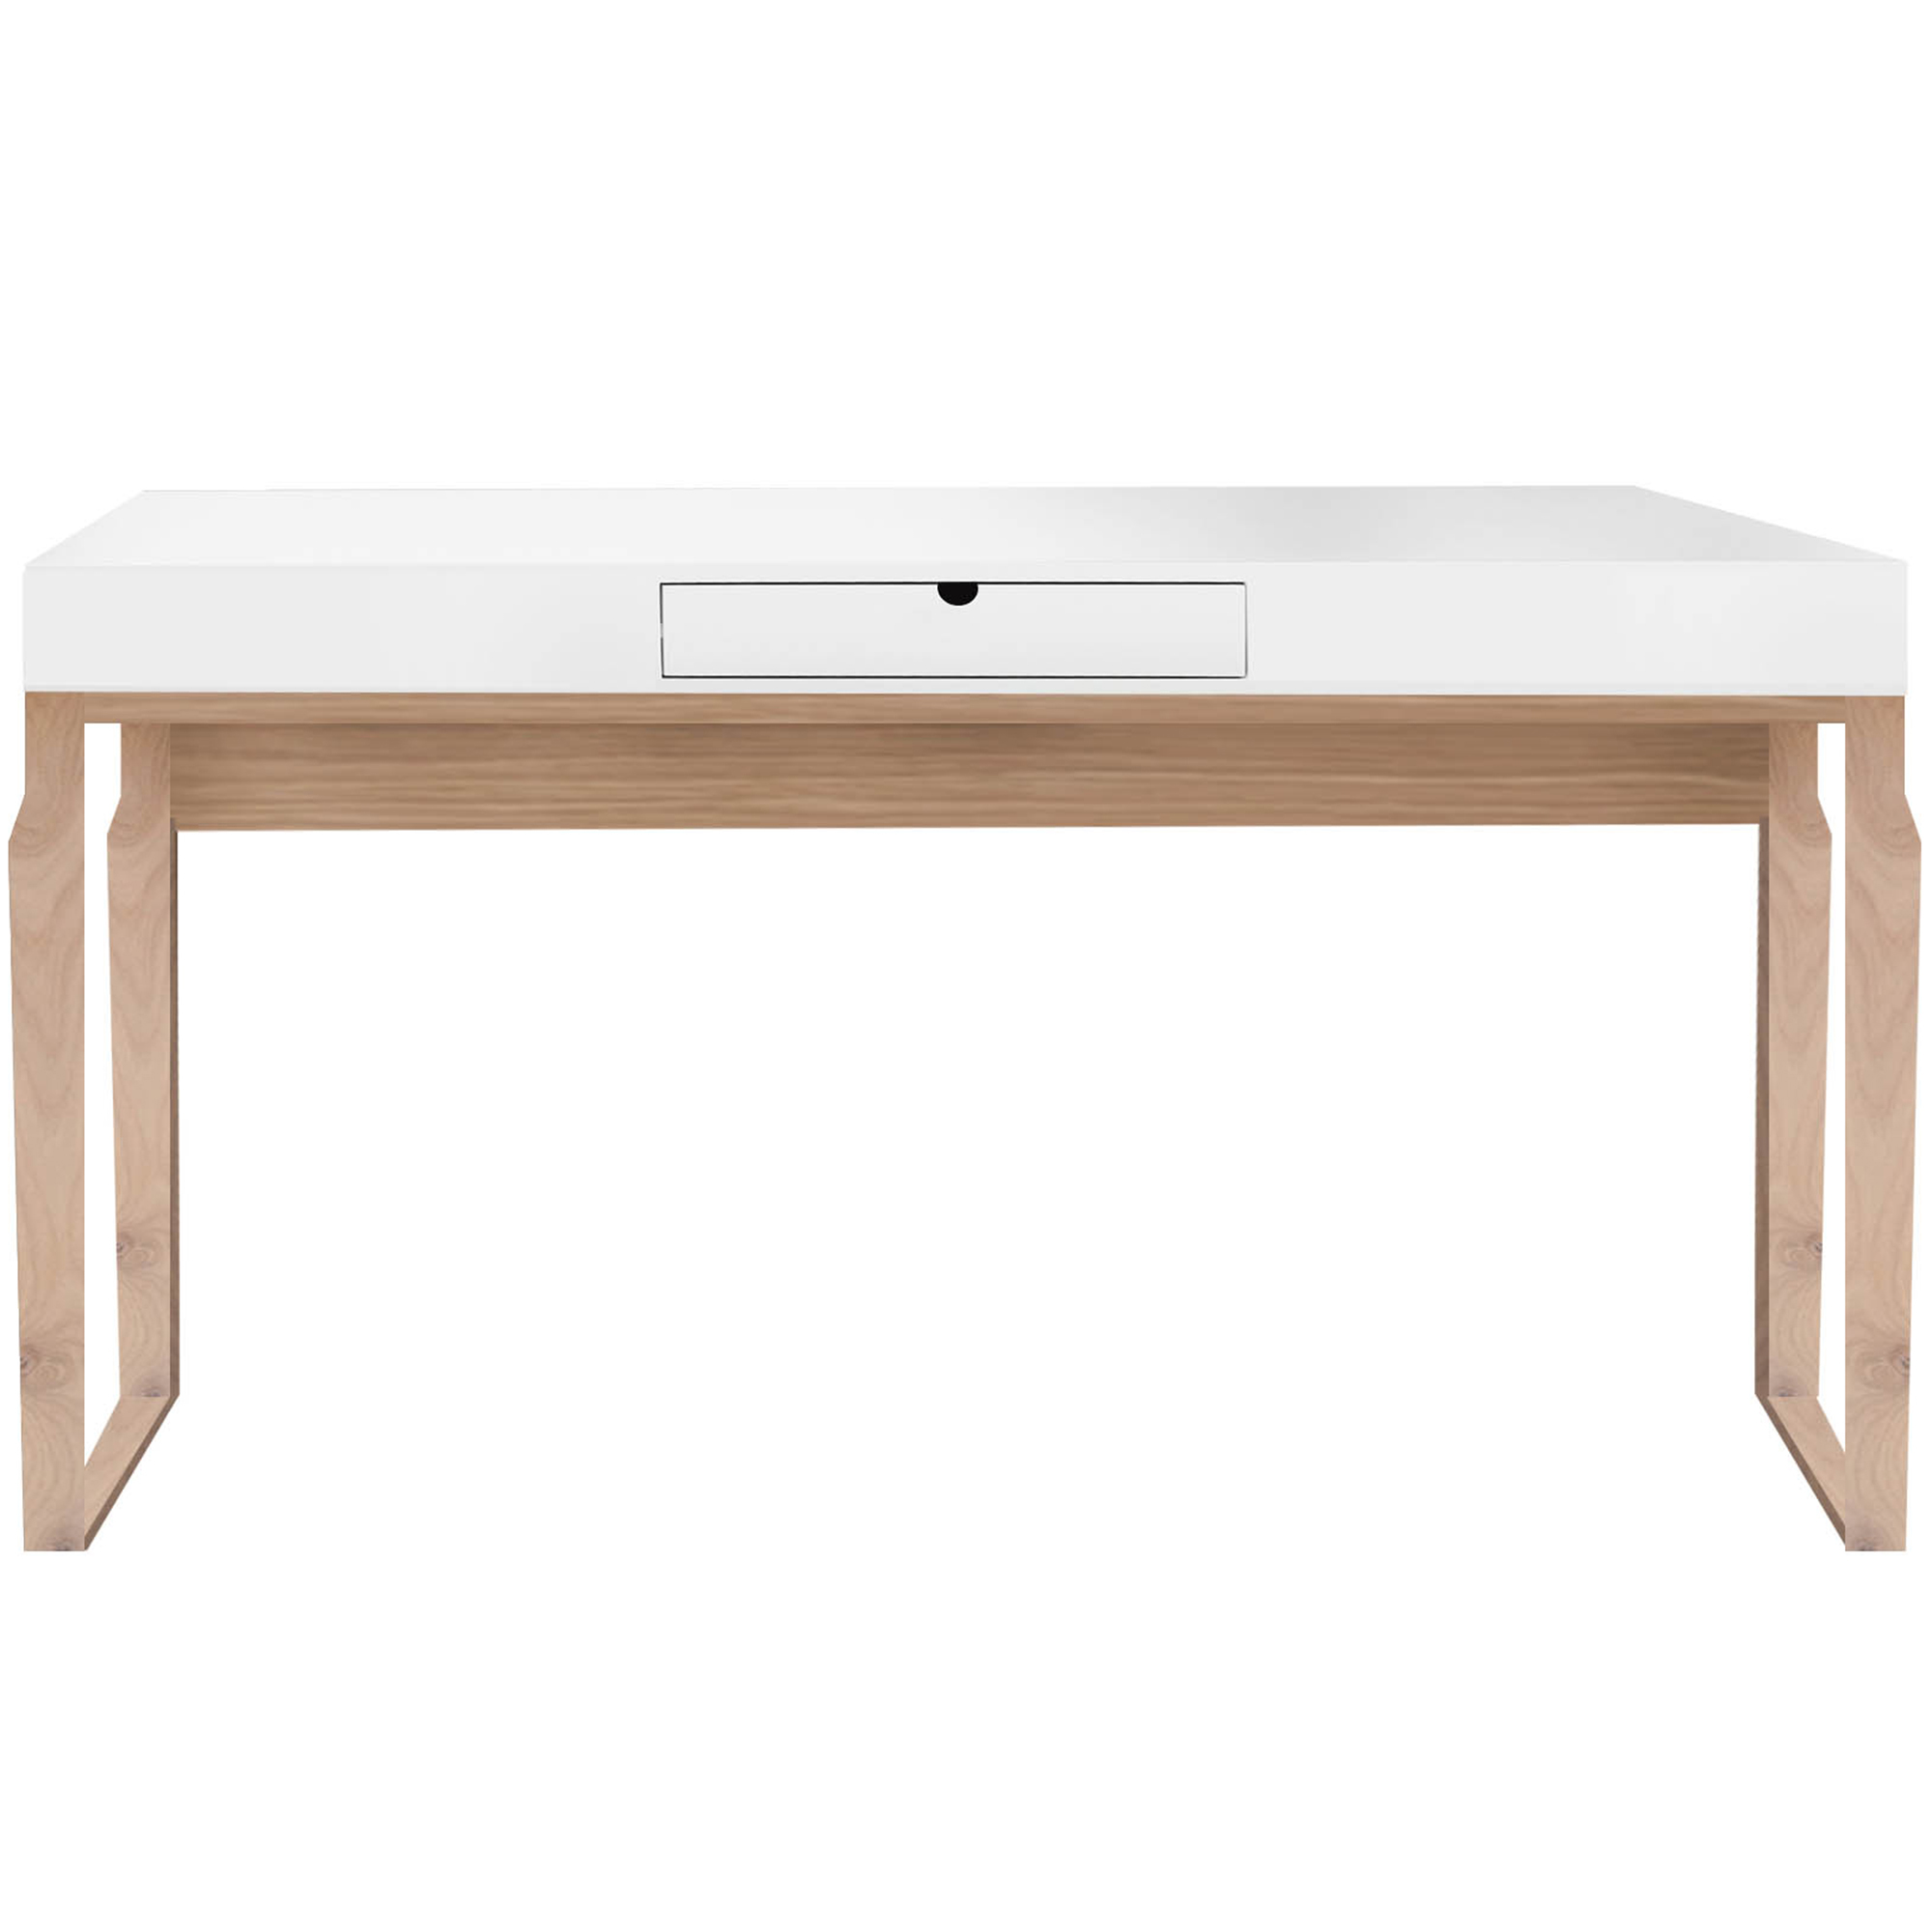 SKU #DESO1111 Vienna Multi Purpose Desk Is Also Sometimes Listed Under The  Following Manufacturer Numbers: VIENNA DESK